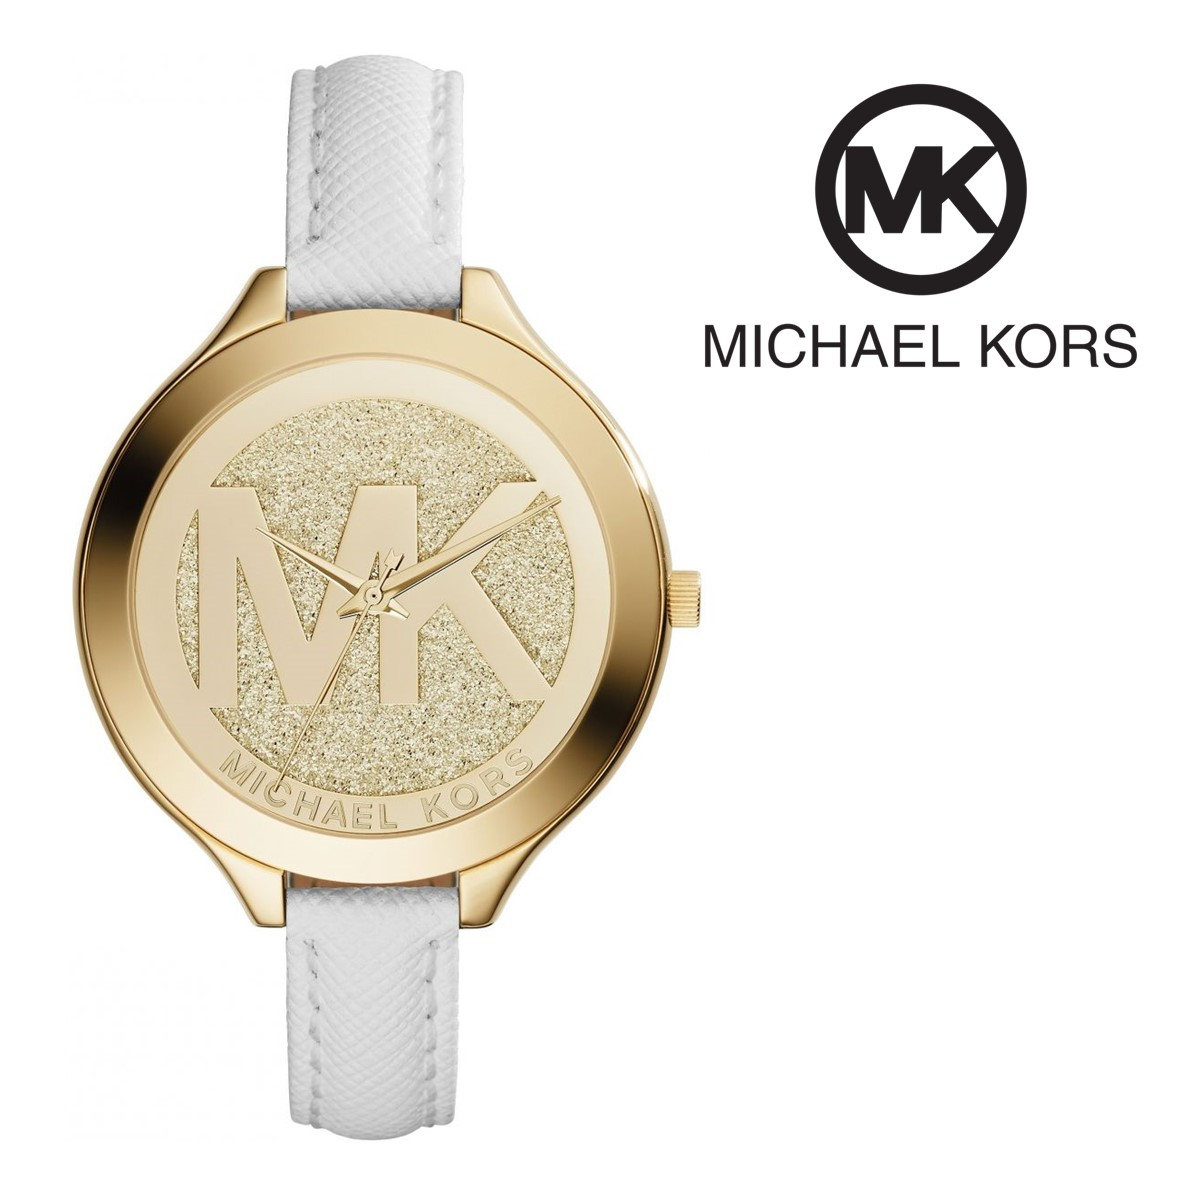 Relógio Michael Kors® MK2389 - You Like It 62f485451e